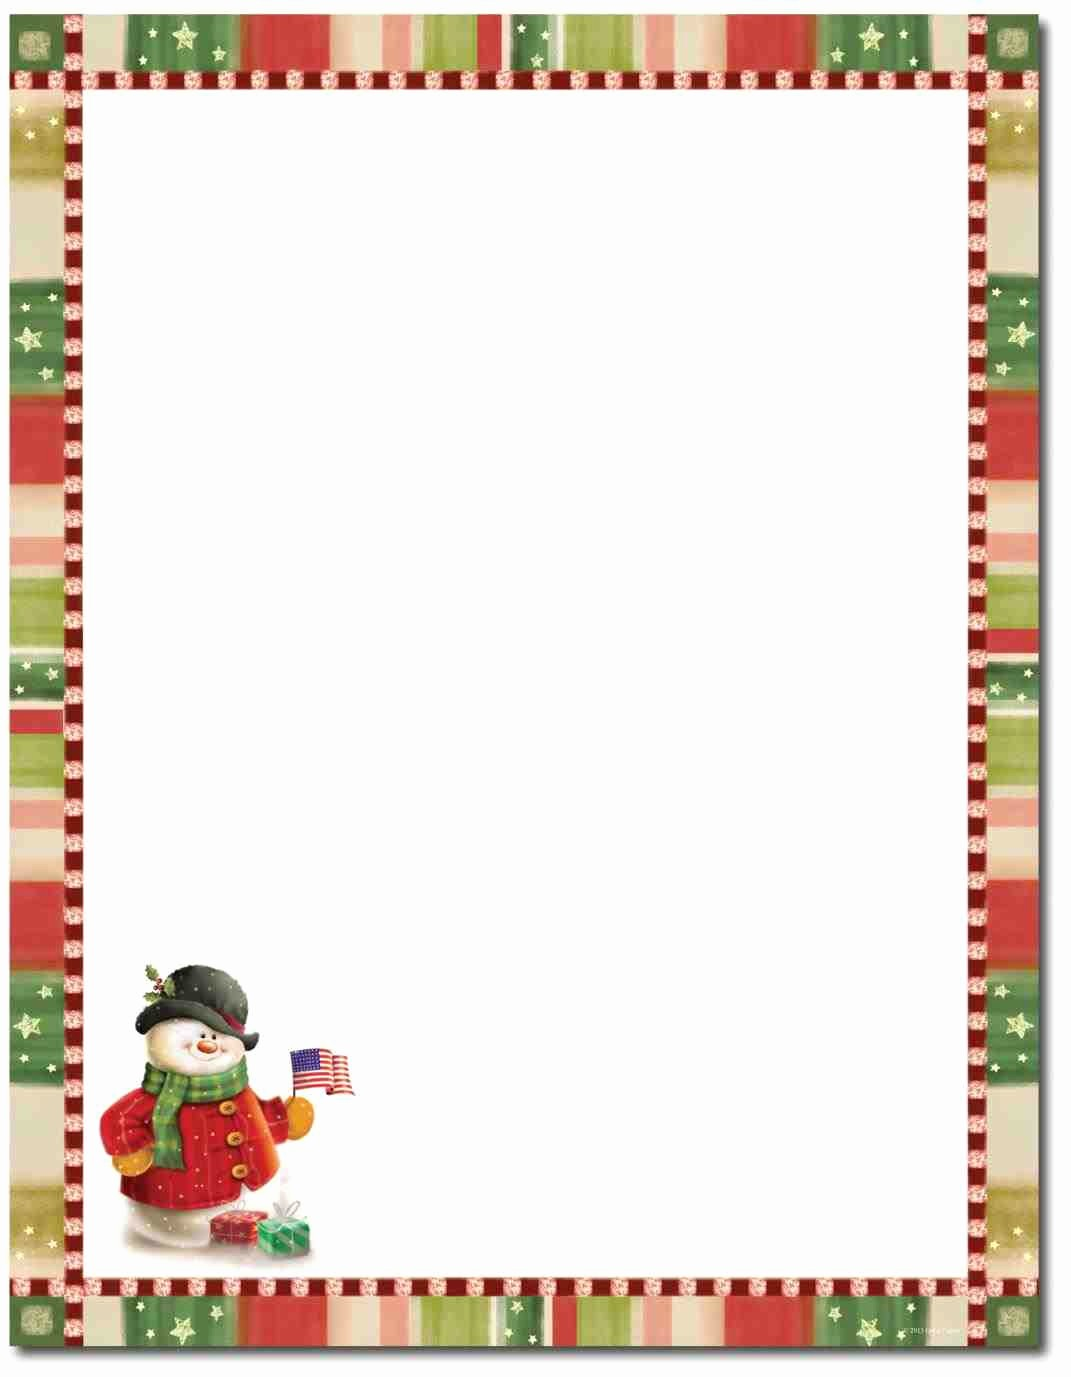 Holiday Paper Templates Free Download Unique Free Printable Borders Frames Printable 360 Degree